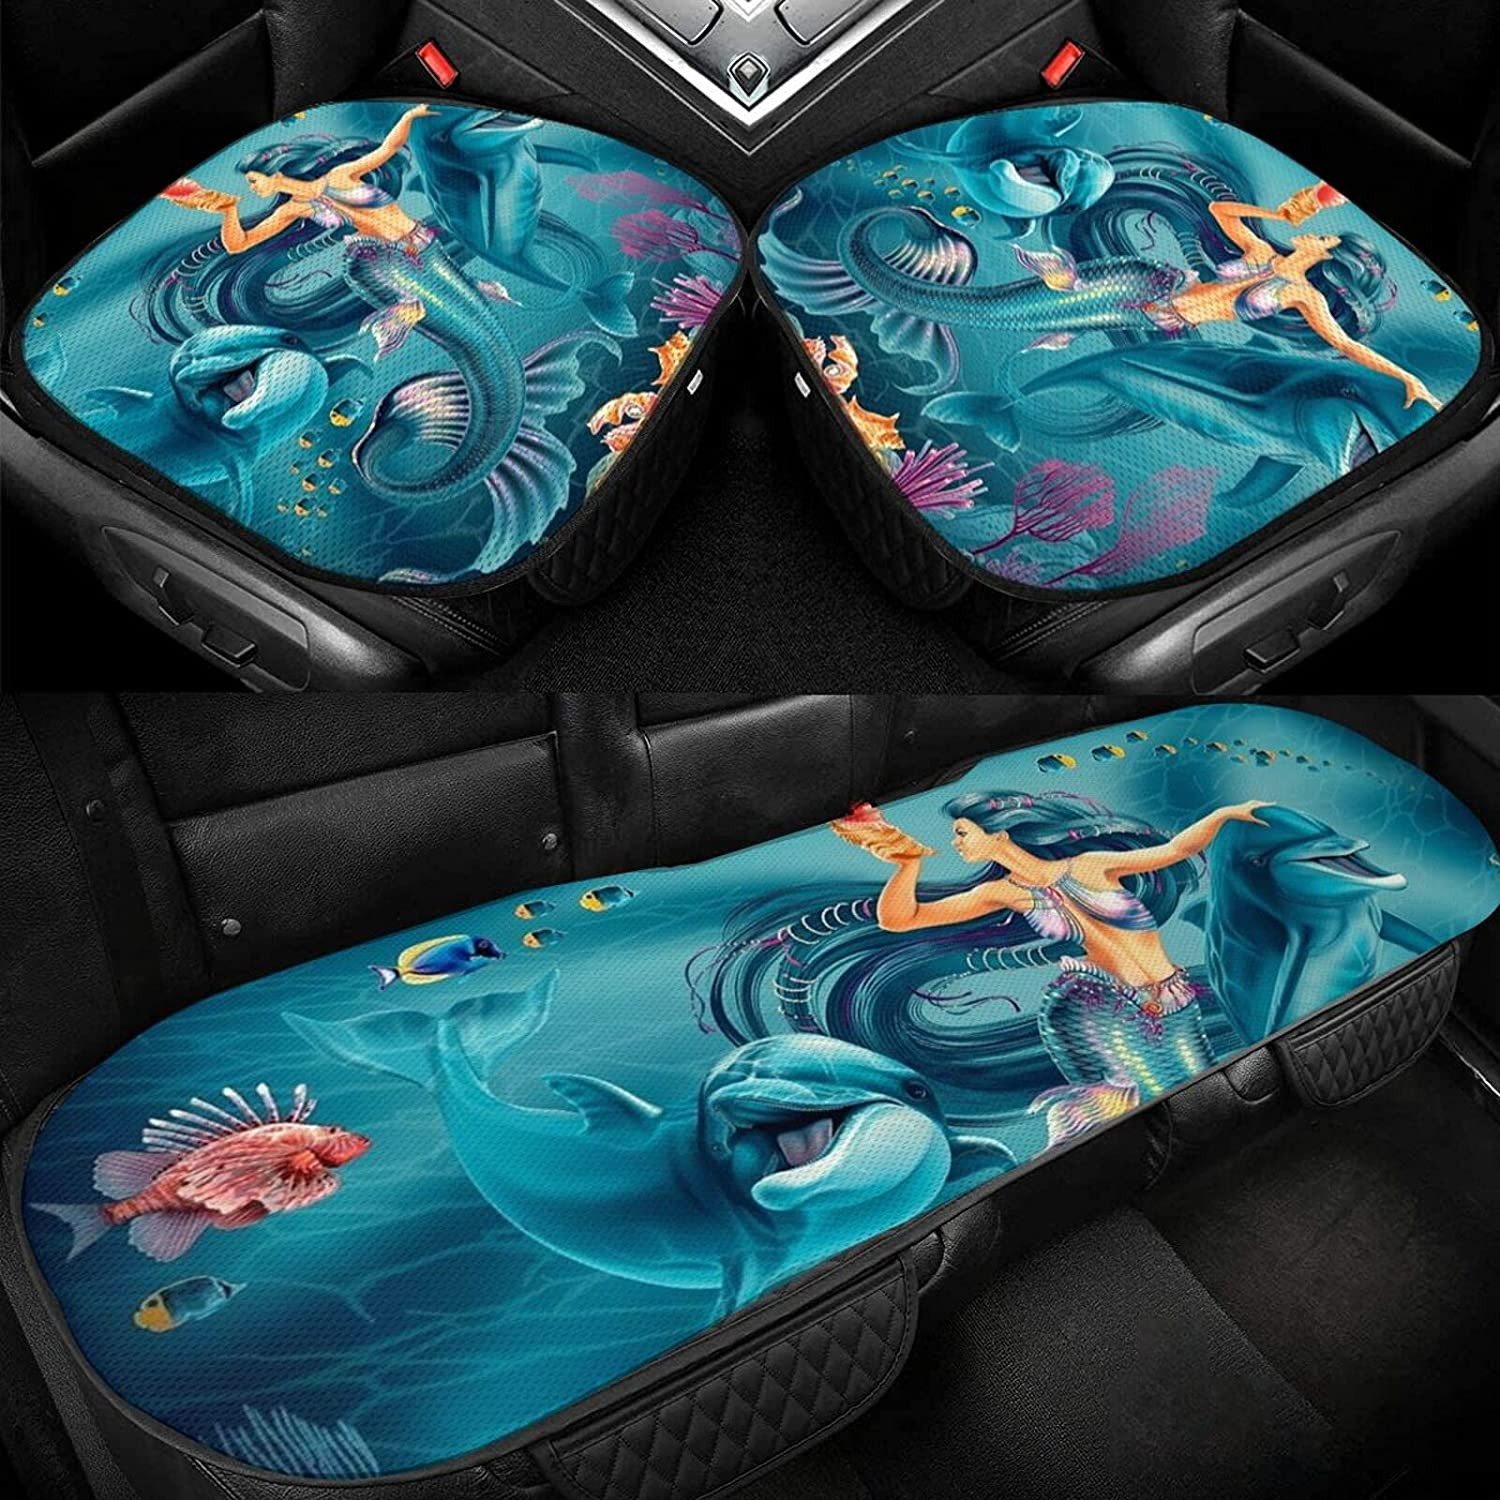 QMLHOME Auto Seat Pad Lowest price challenge Mermaid Car Sea Fishes Dolphins Max 76% OFF Cover